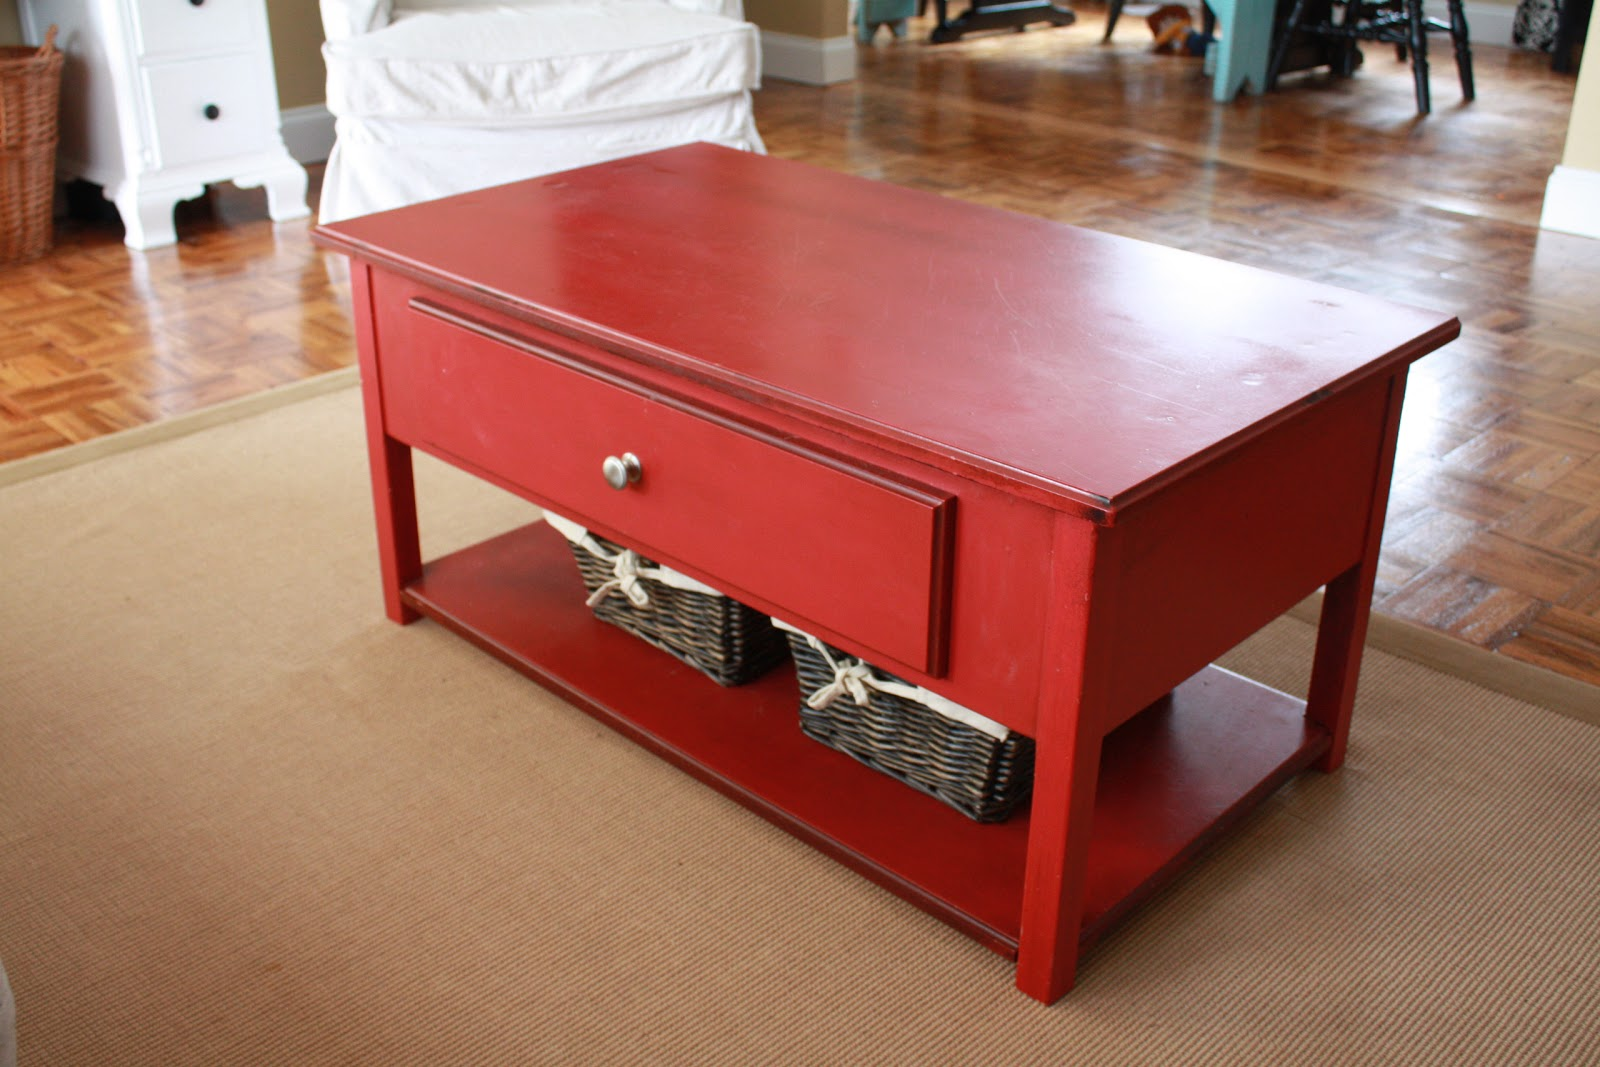 it's just Laine: The Amazing Red Coffee Table